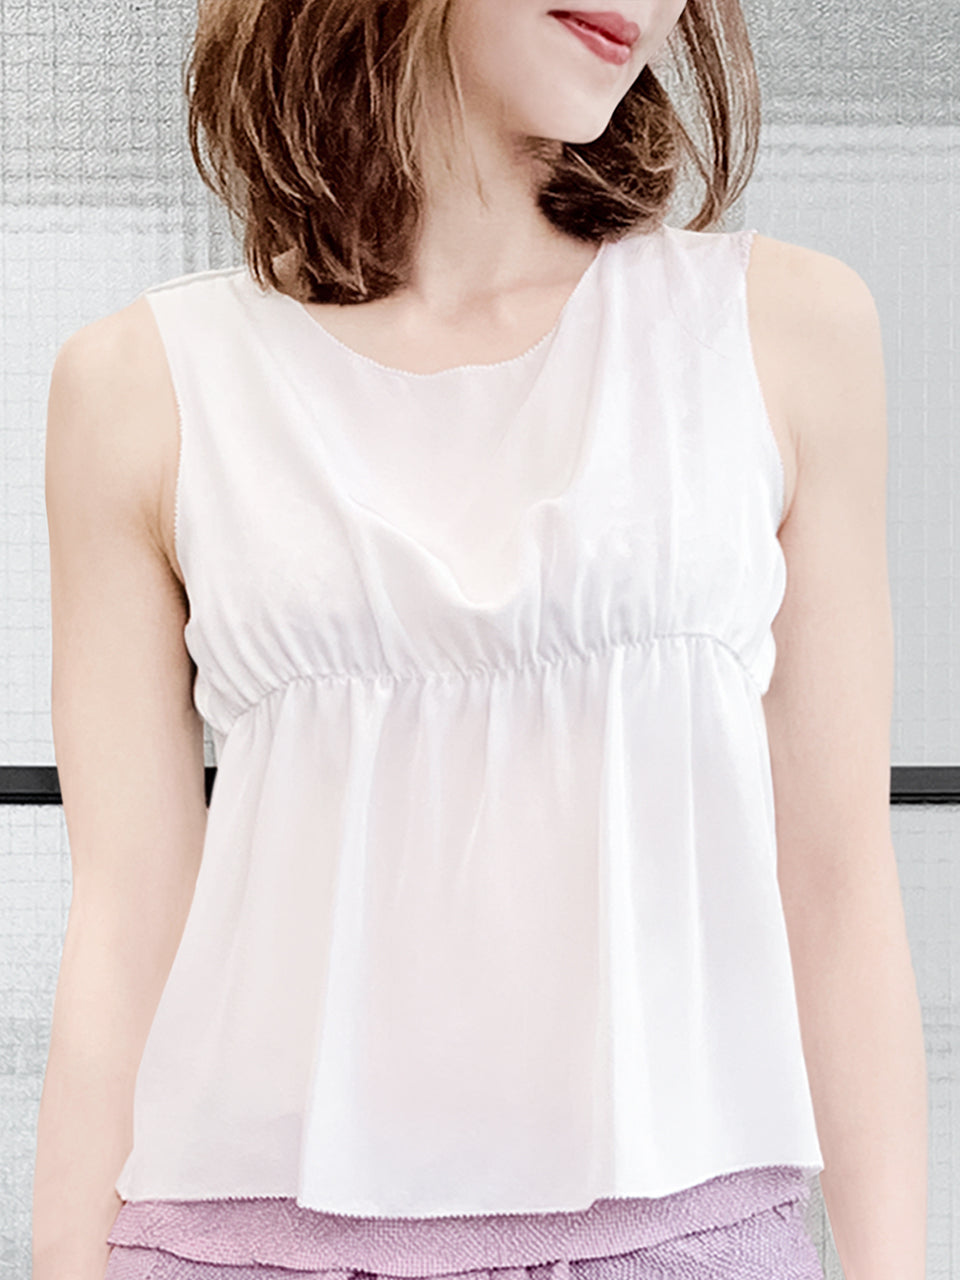 Surprise Sale! White Stitched Trim Empire Waist Silk Tank